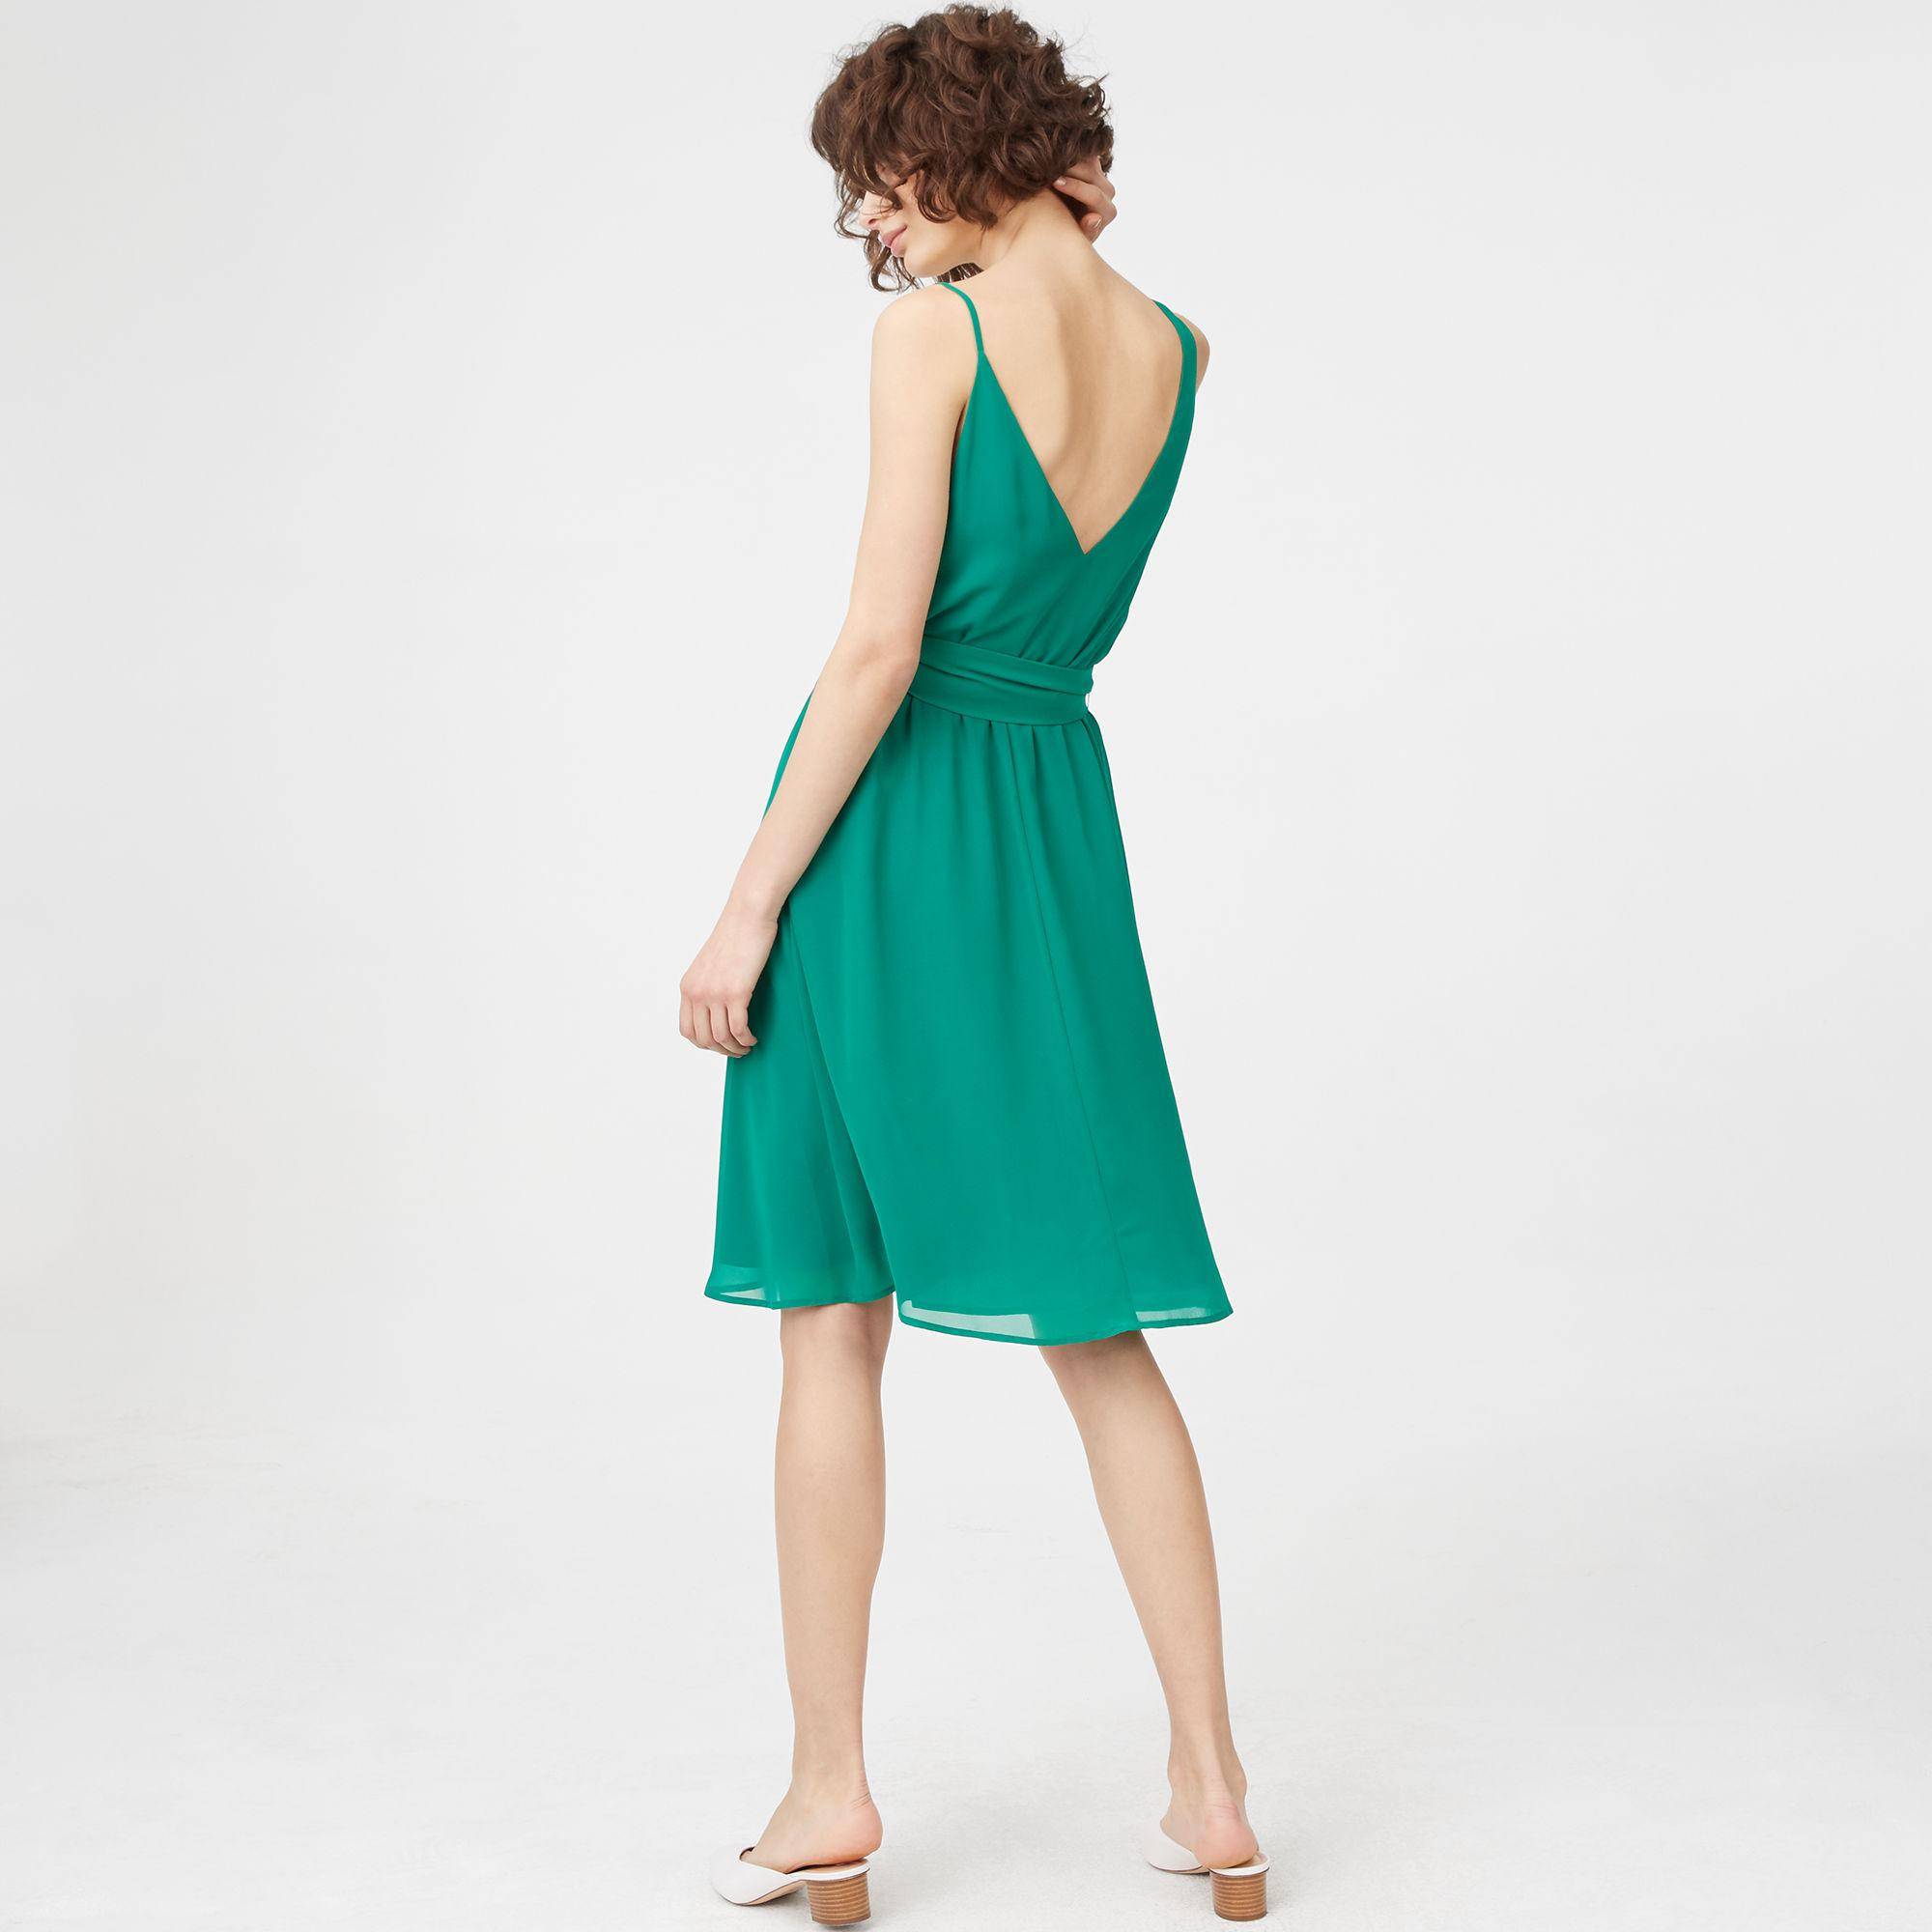 Lyst - Club Monaco Nahala Dress in Green